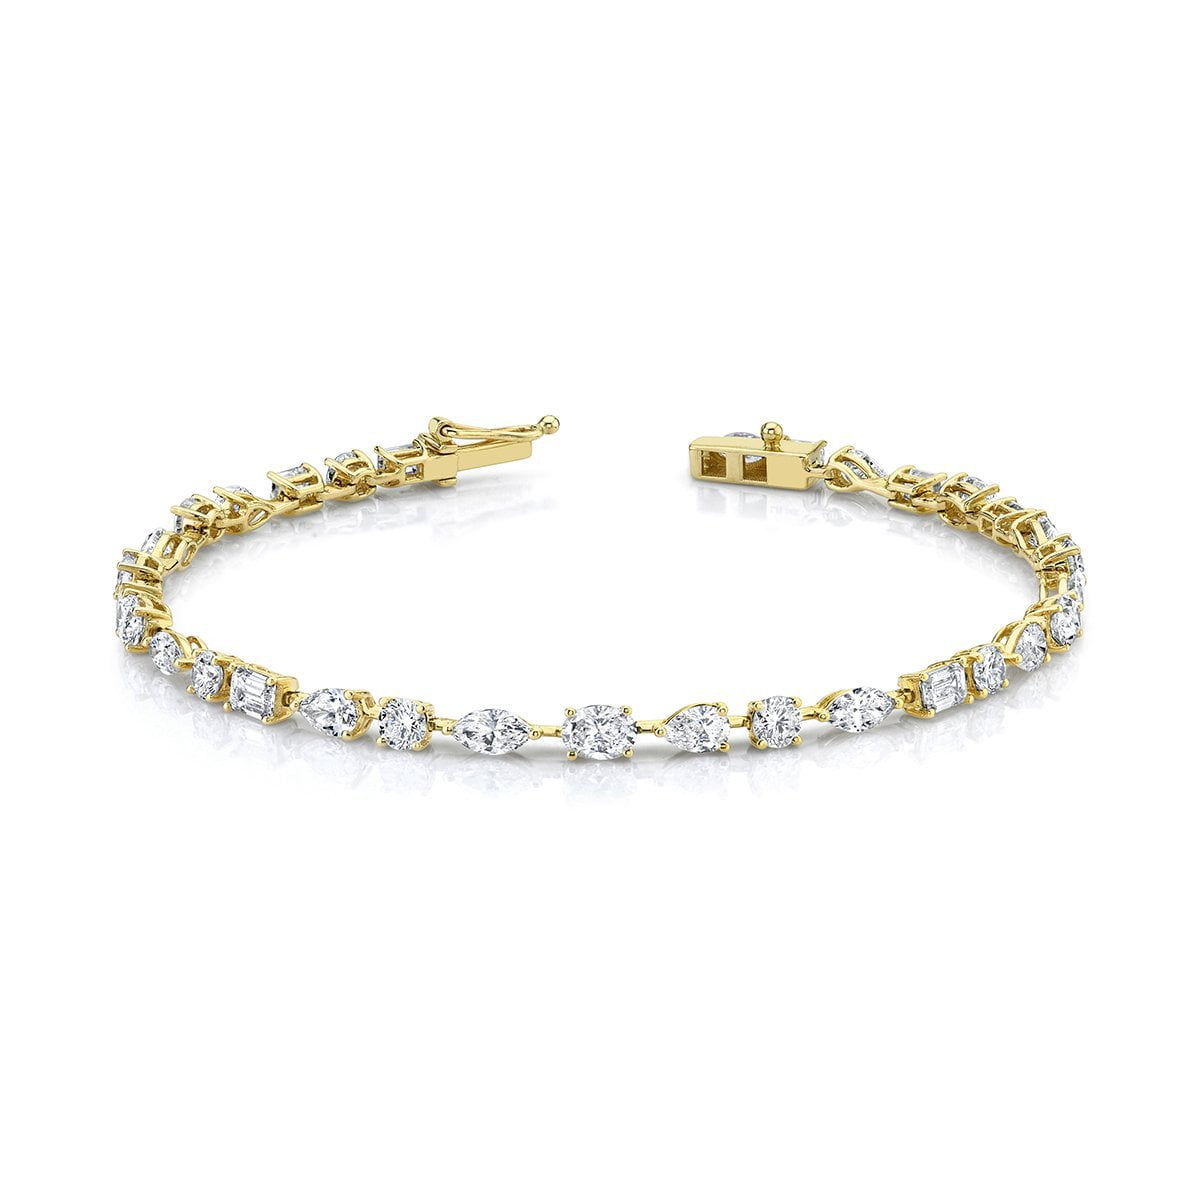 NEW! Diana Diamond Bracelet